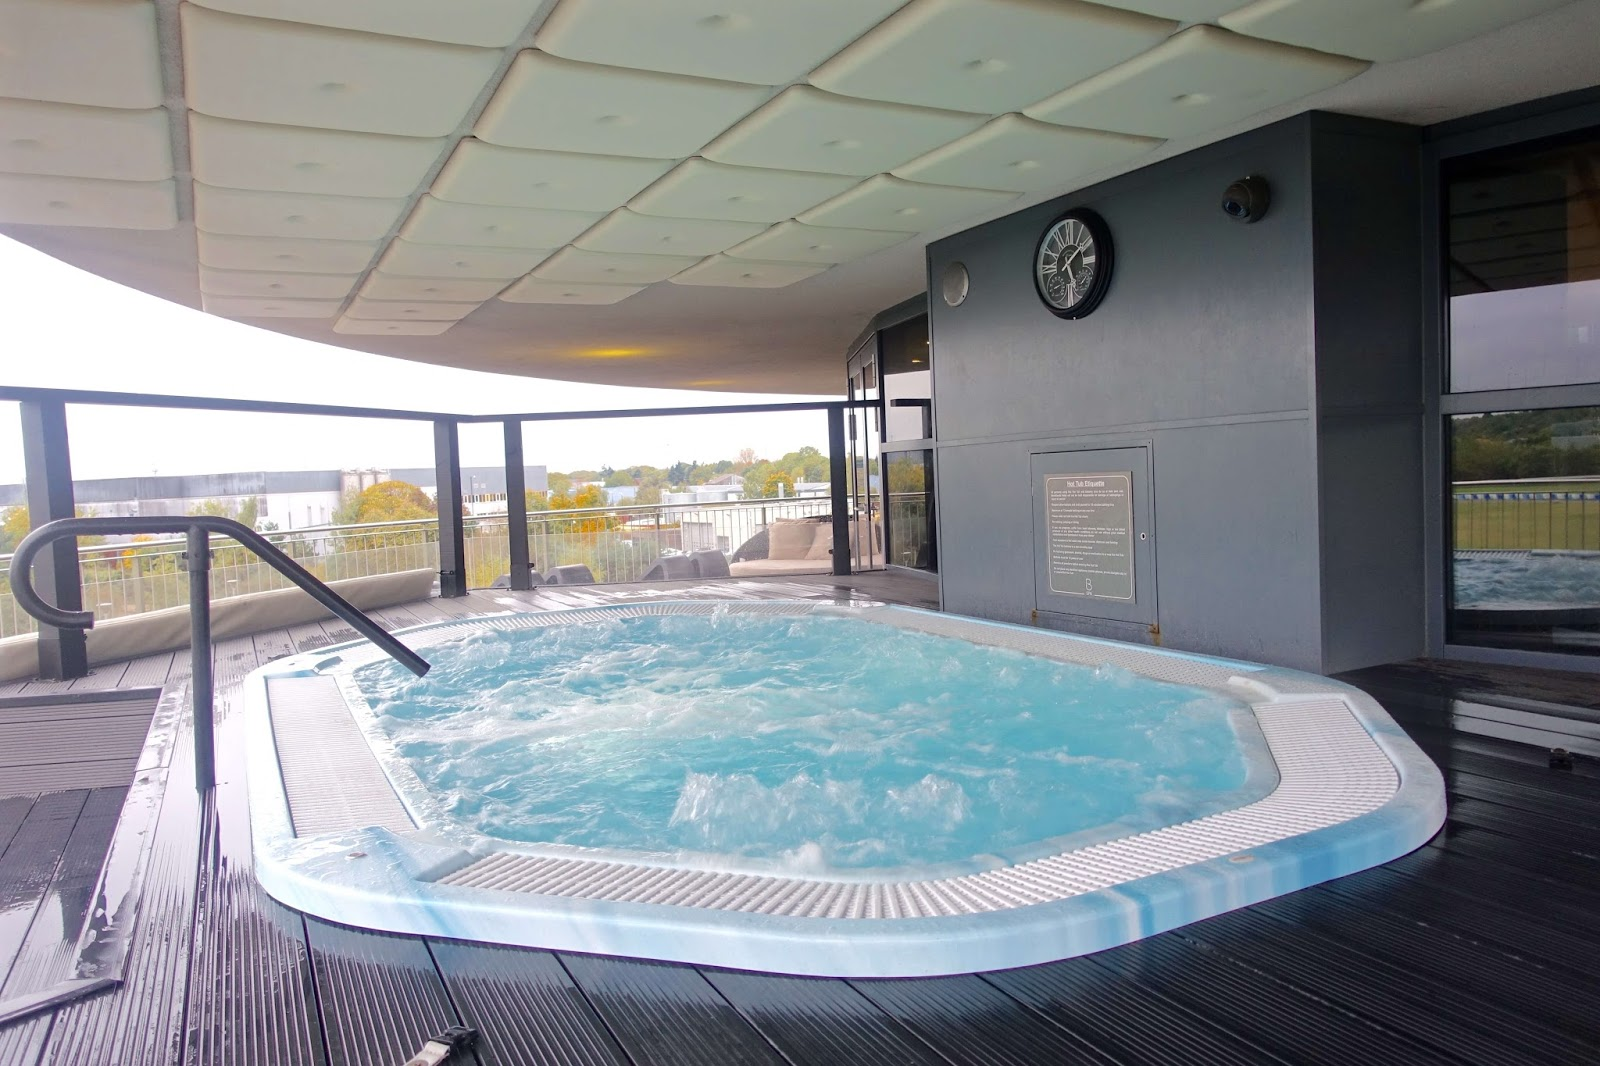 outdoor hot tub seating 12 people brooklands hotel spa